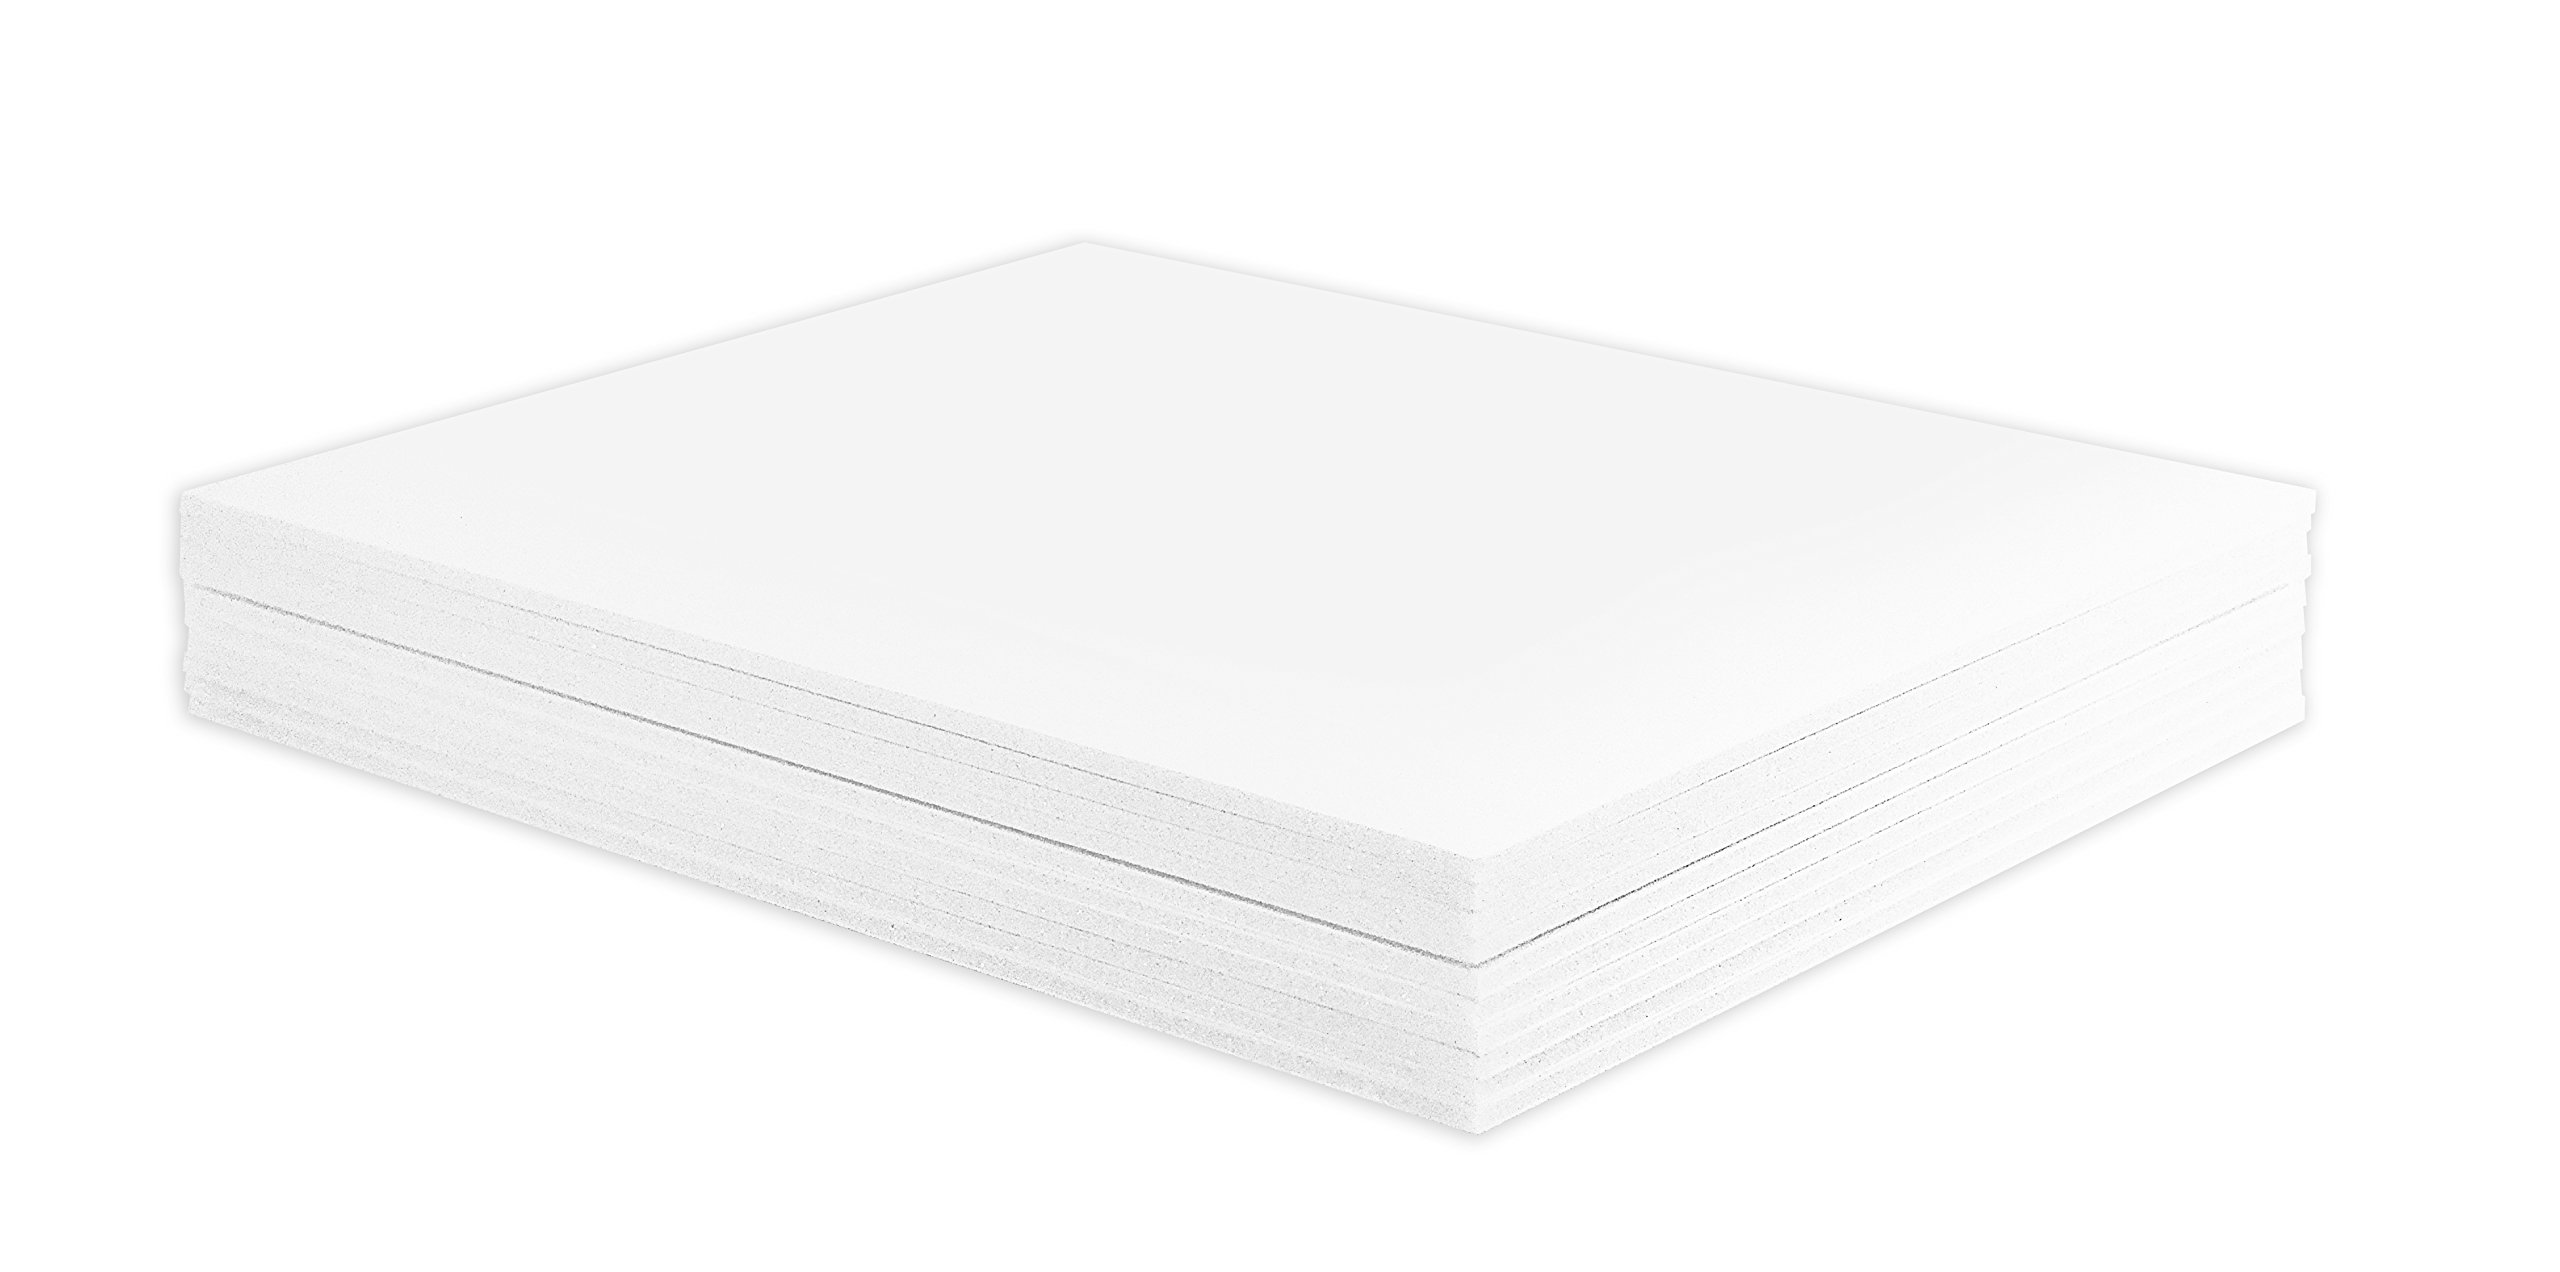 Golden State Art, Pack of 10, 1/8'' Thick, 11x14 White Foam Core Backing Boards (11x14, White)